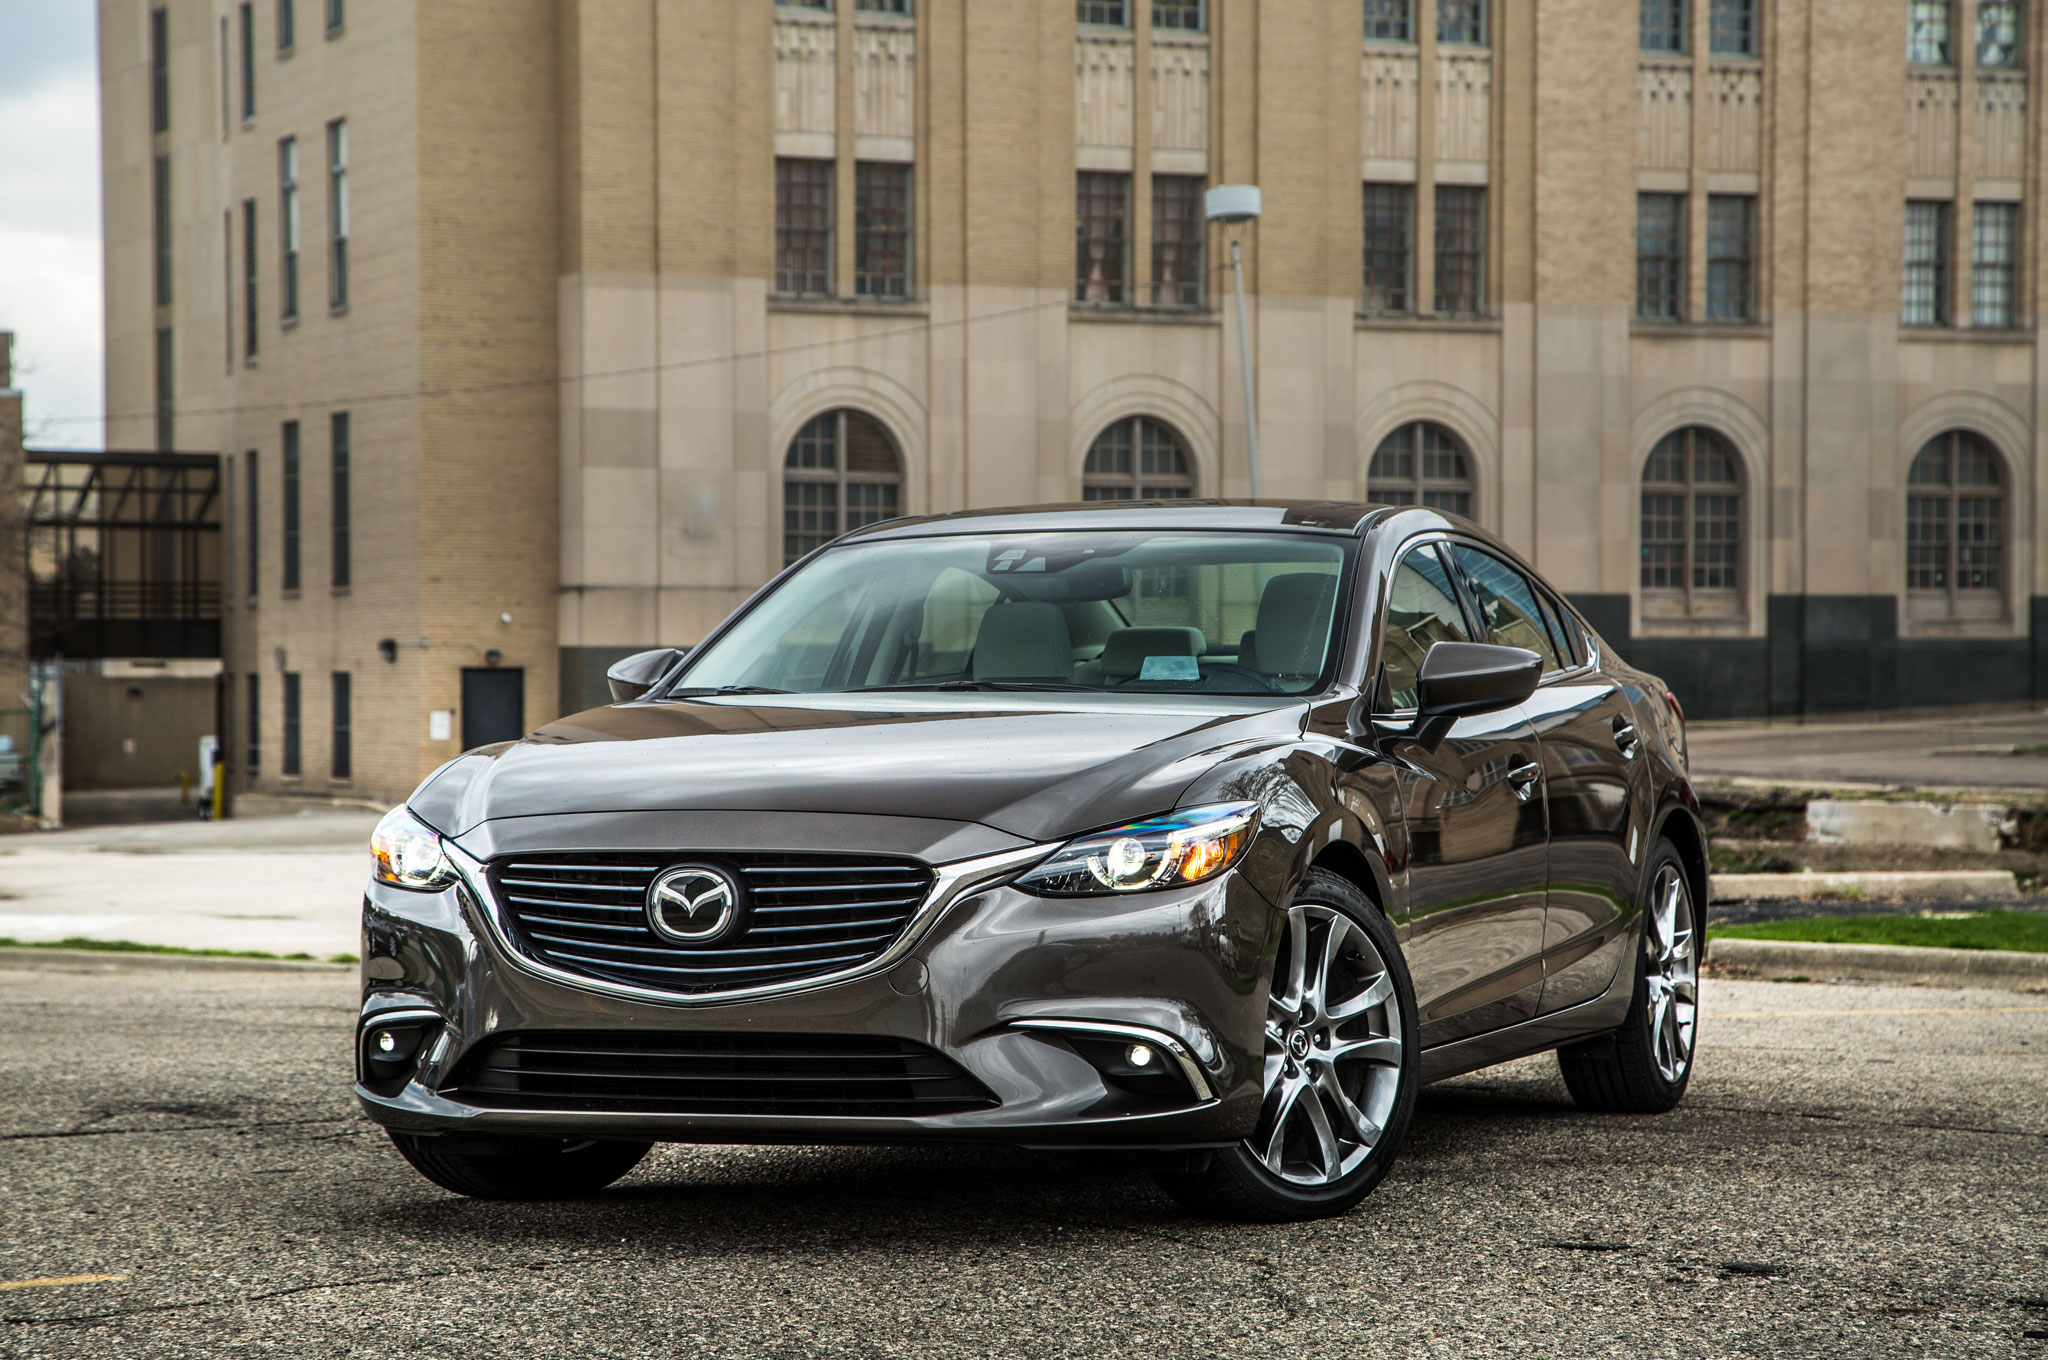 midsize madness 2015: mazda6, accord, sonata, camry, legacy comparison